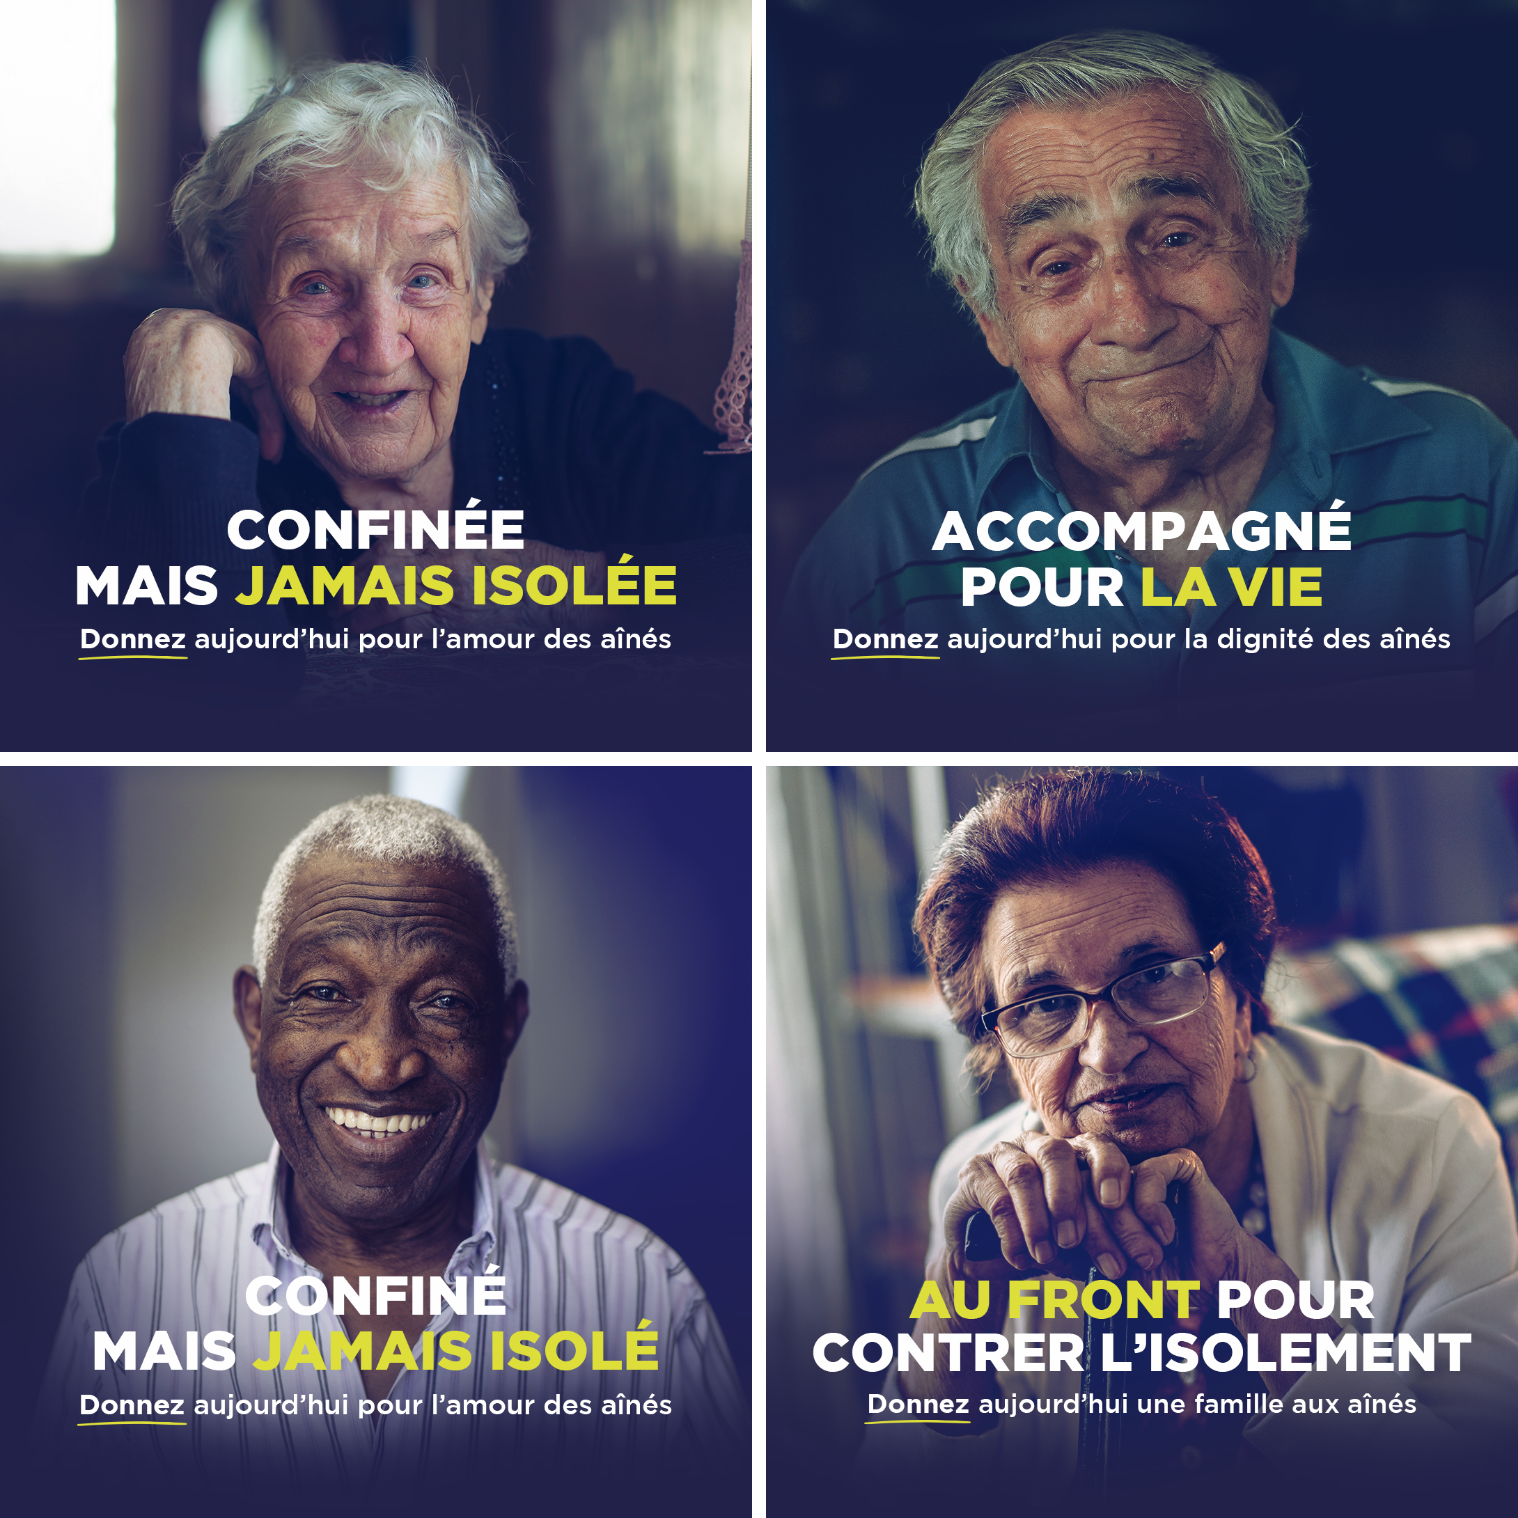 Campagne-Contrer-lisolement